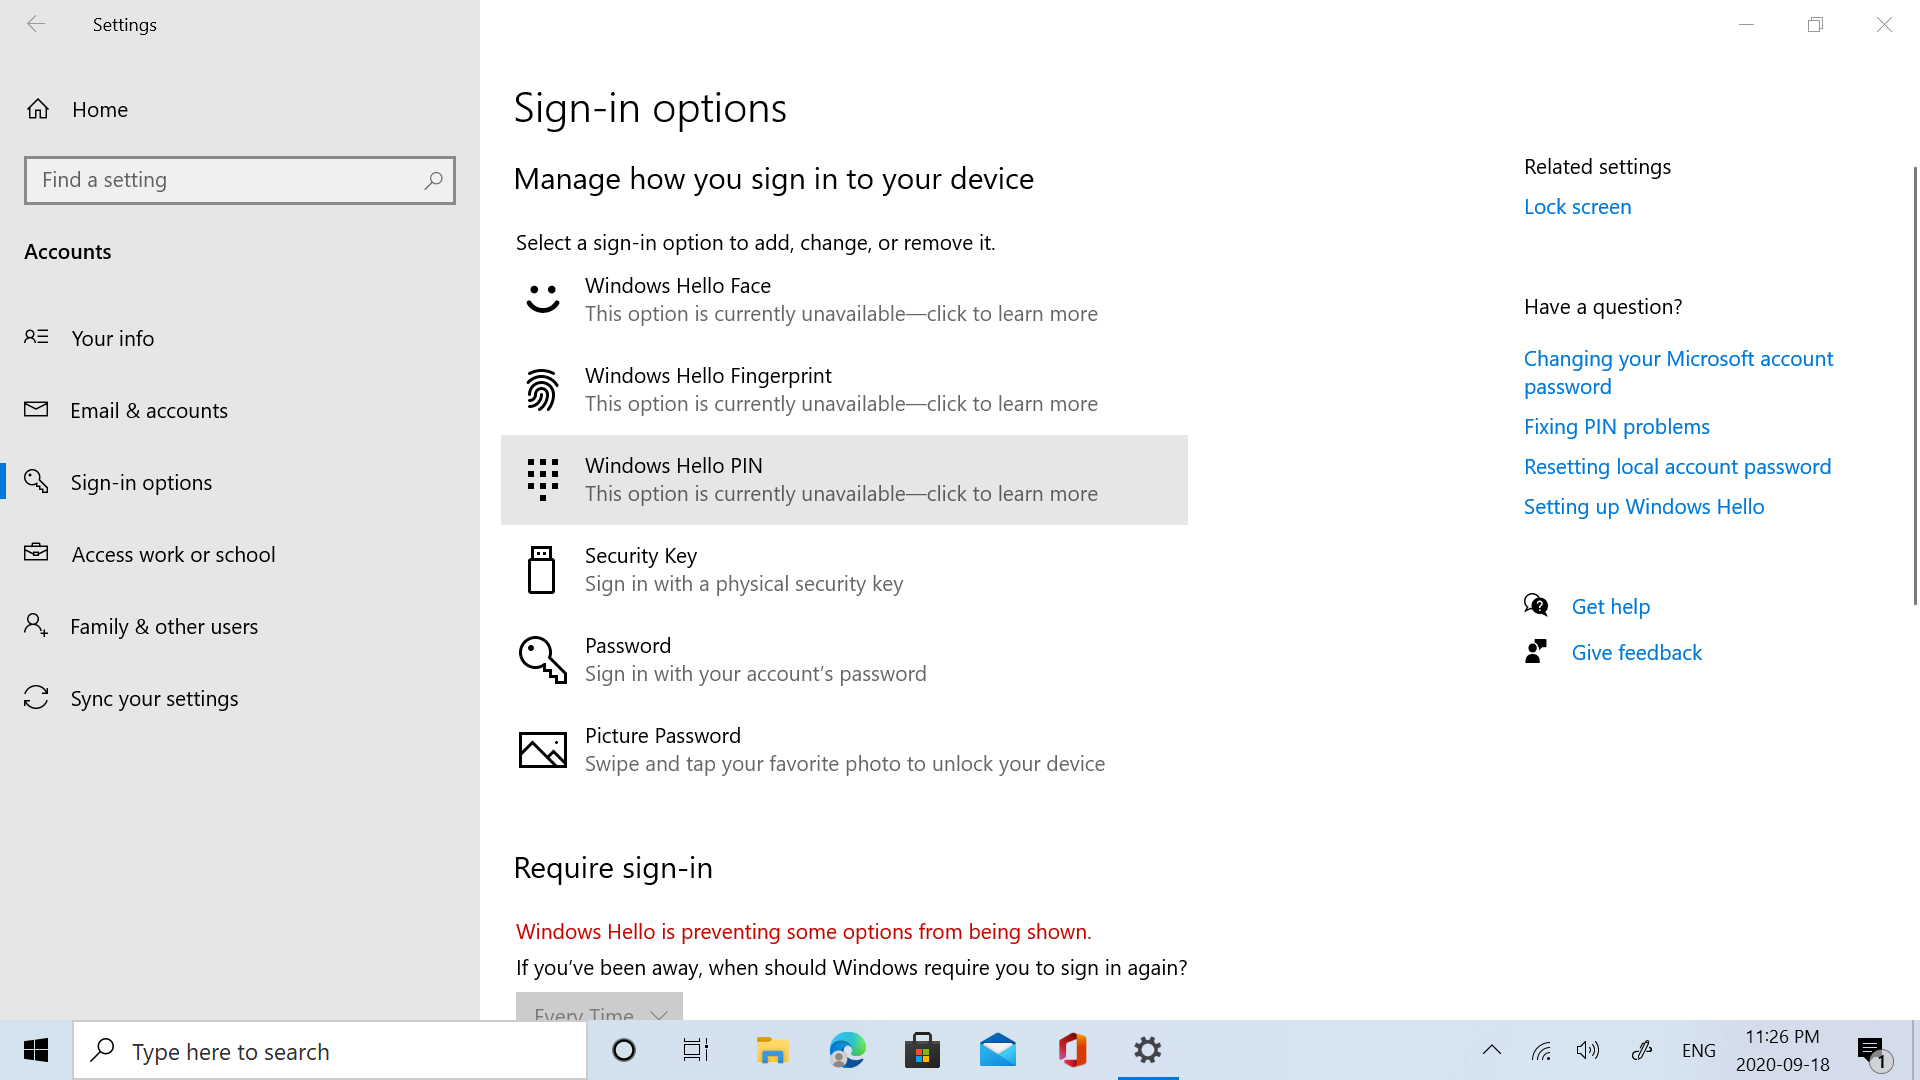 All Windows Hello sign-in options are unavailable fc2c6f9a-5949-4e47-98a0-d7b5d8e97f3b?upload=true.png